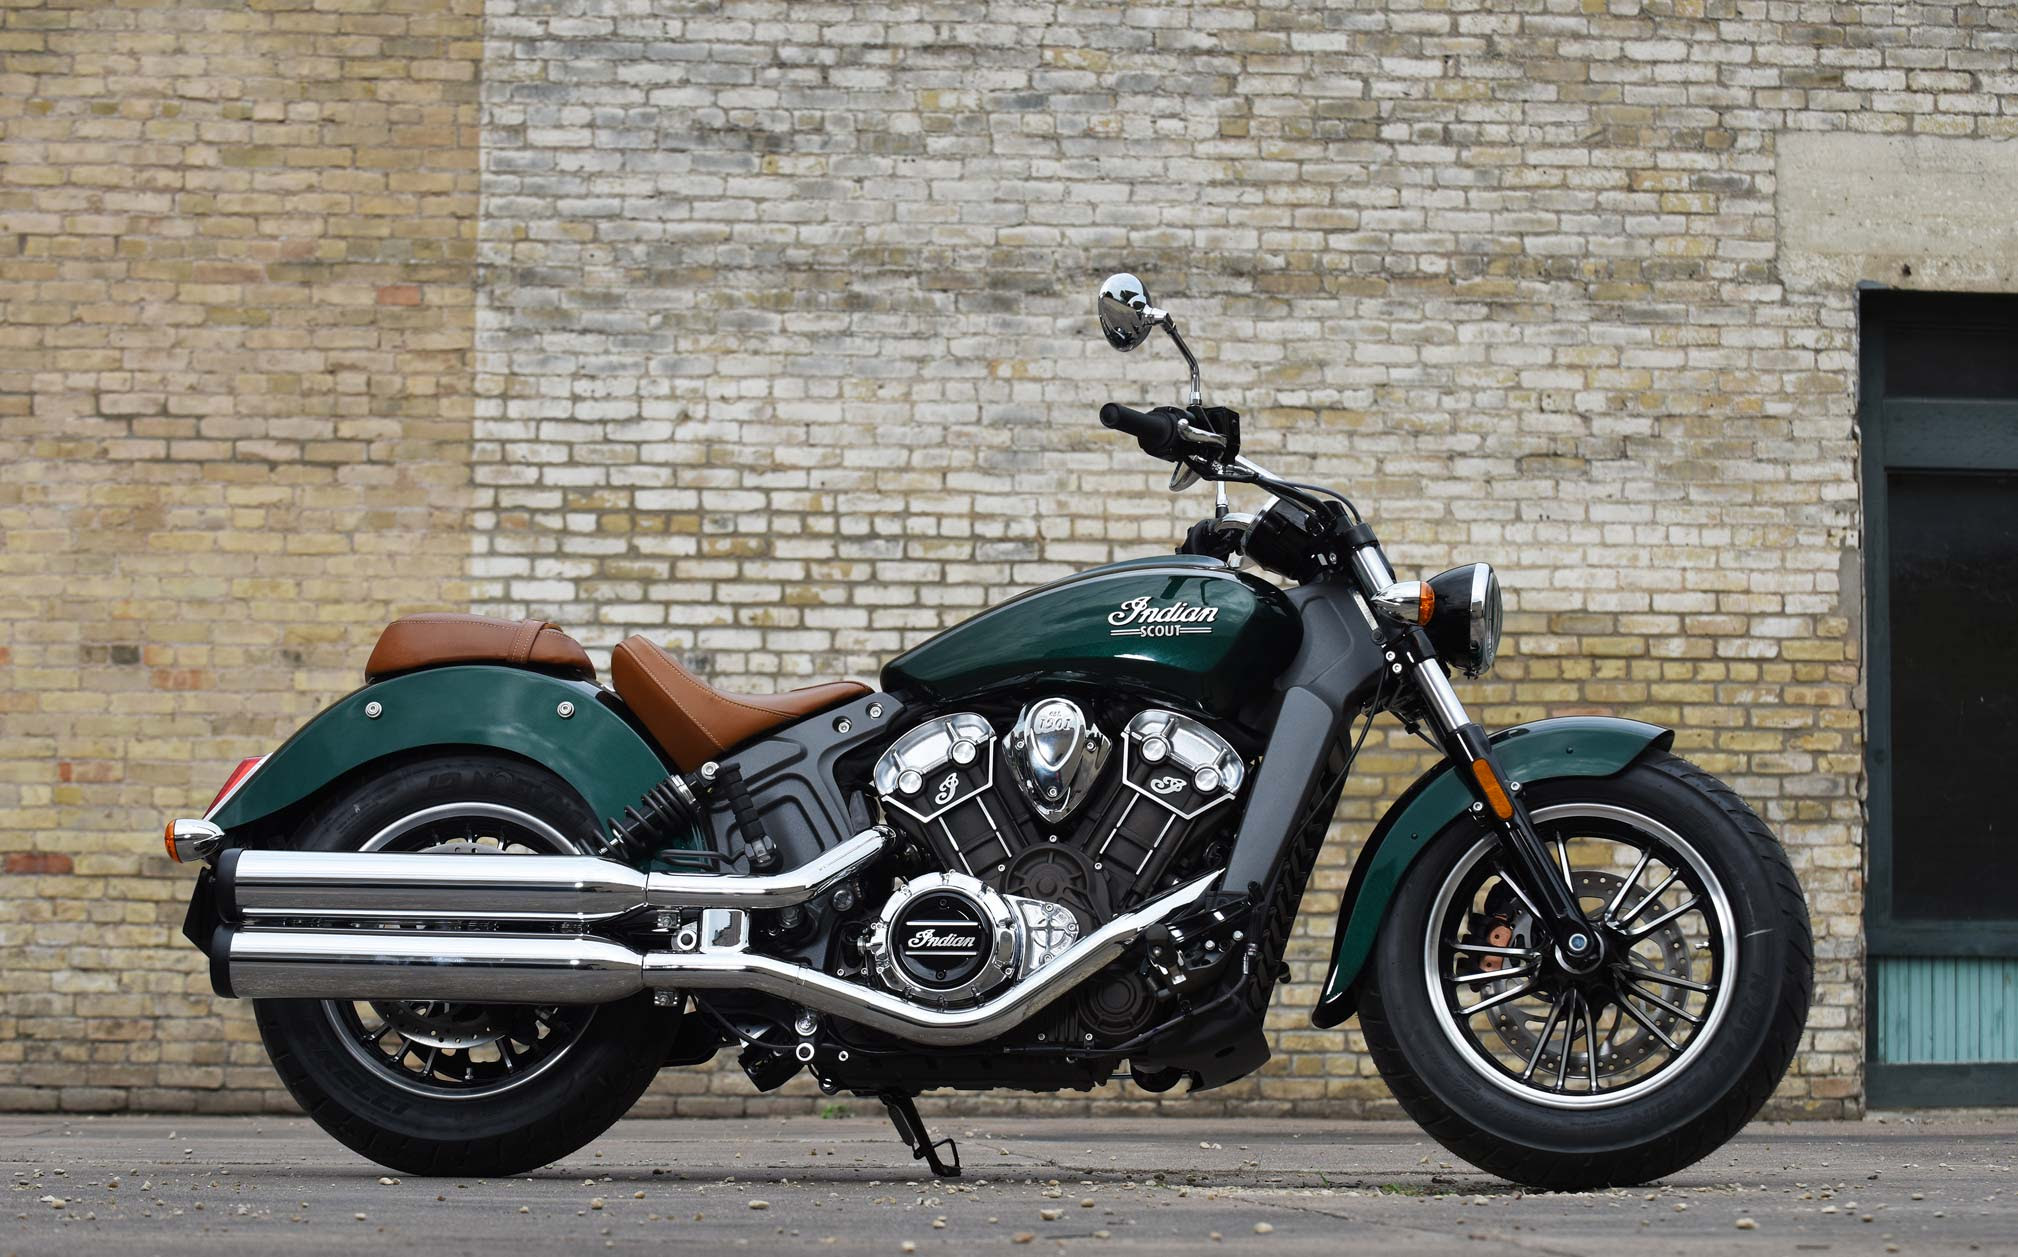 2018 Indian Scout Review - TotalMotorcycle